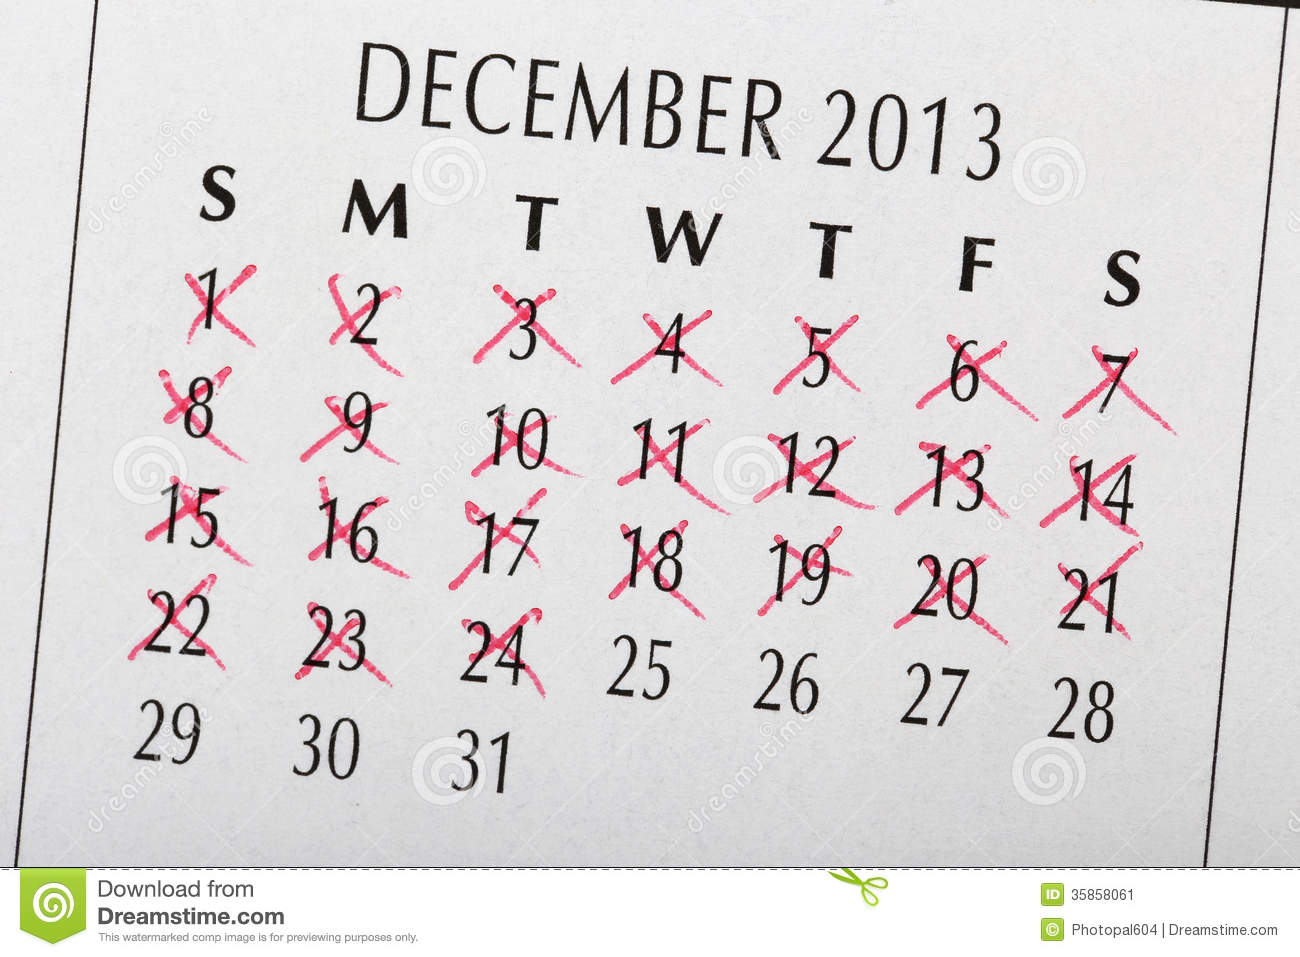 Calendar Of Events Thanksgiving Points Calendar Count Down To Christmas Date Stock Image Image 35858061